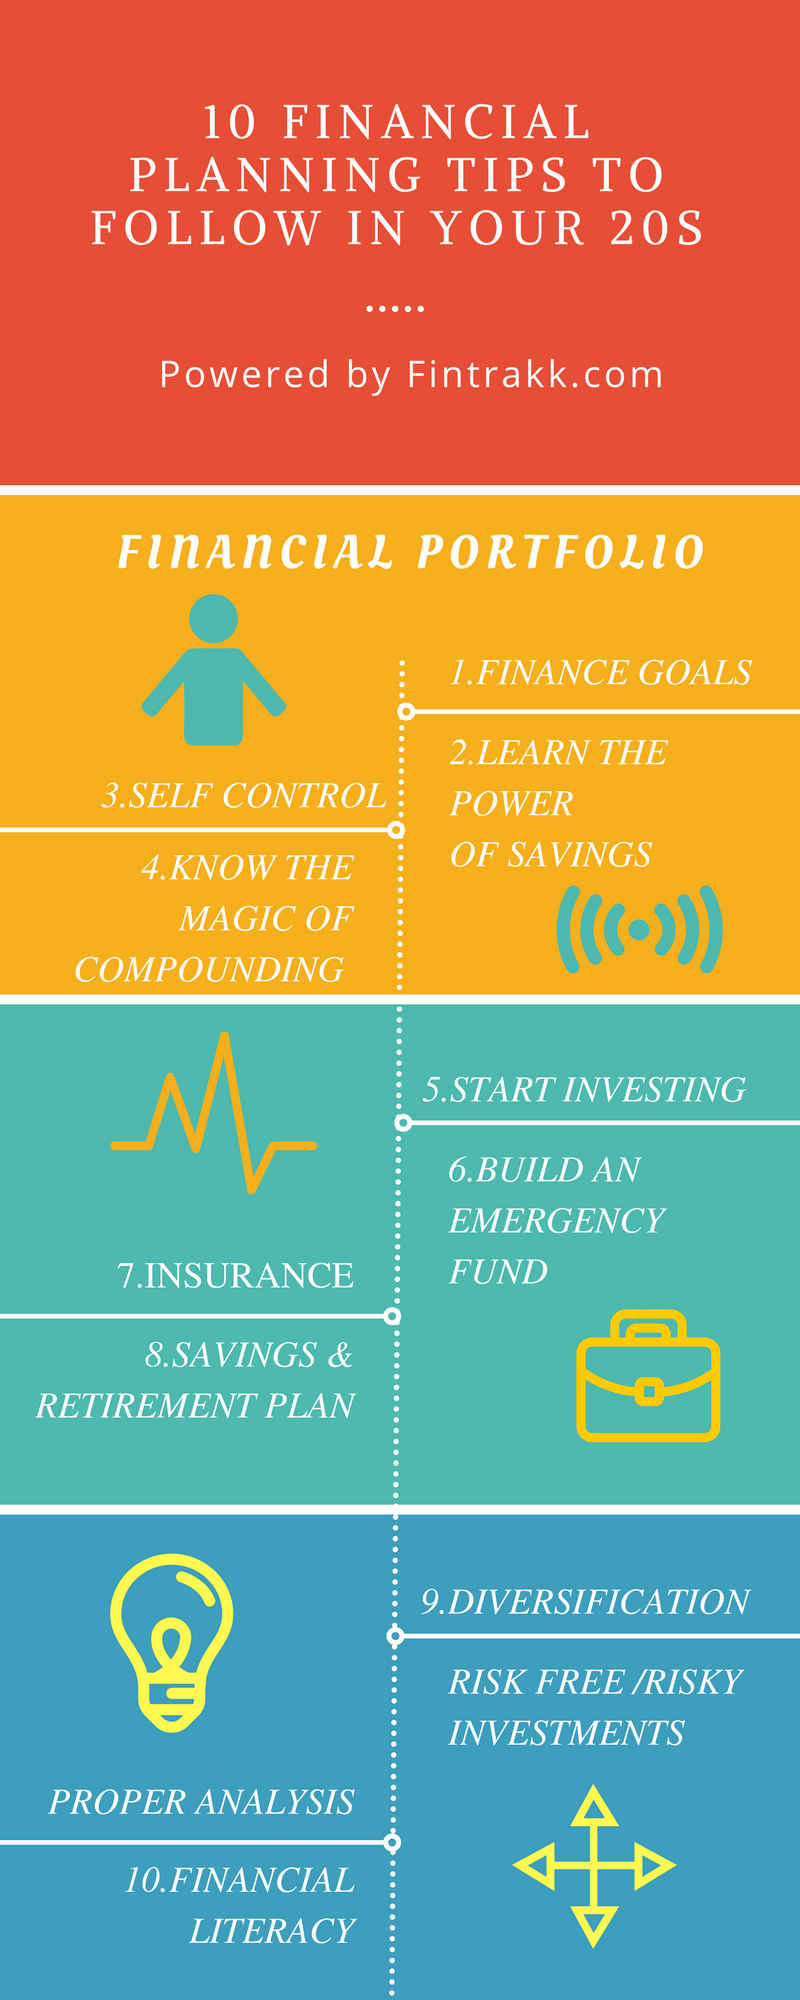 10 Financial Planning Tips To Follow In Your 20s Fintrakk